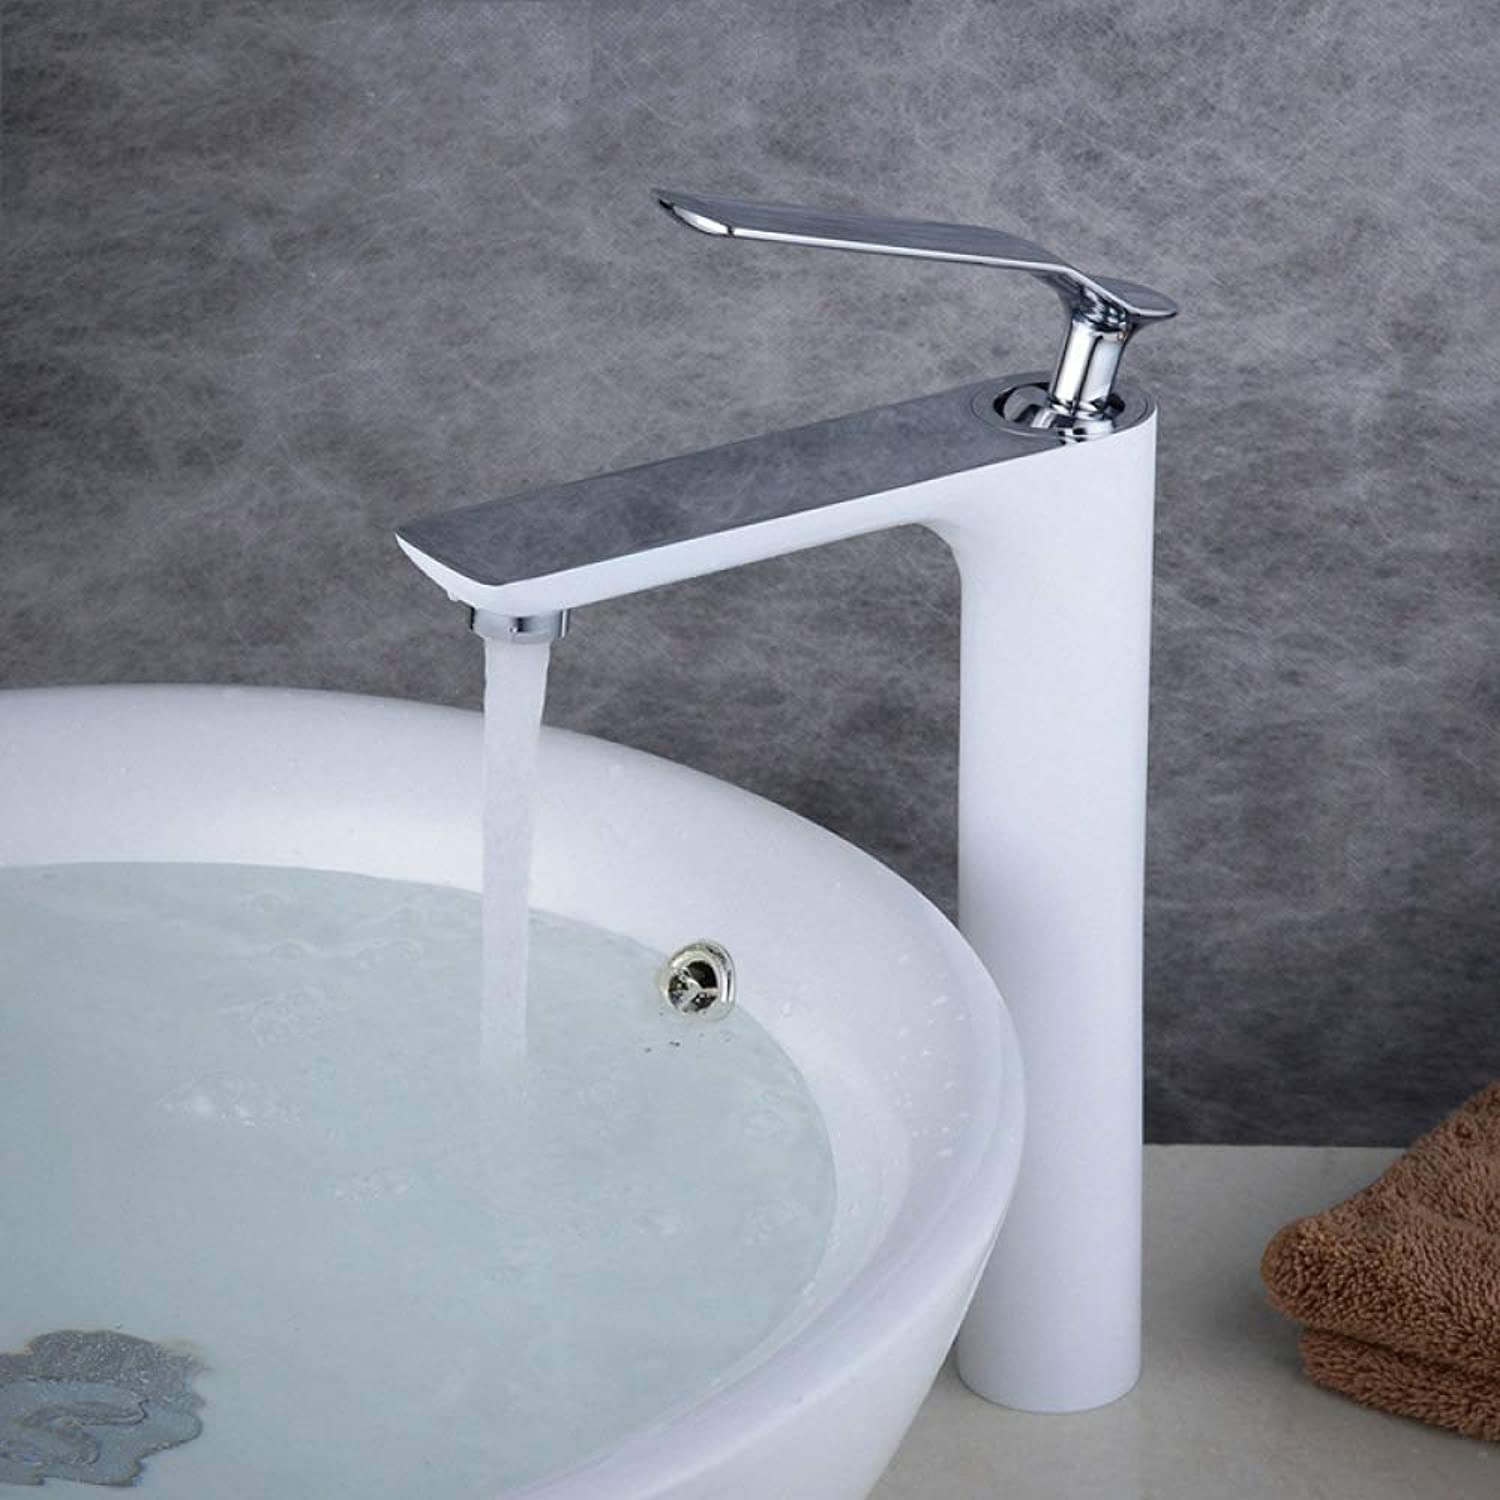 PZXY Faucet All Copper Water-Saving Basin Faucet Basin hot and Cold Mixed Water Faucet Lifting Type Faucet 112  46  108  98mm